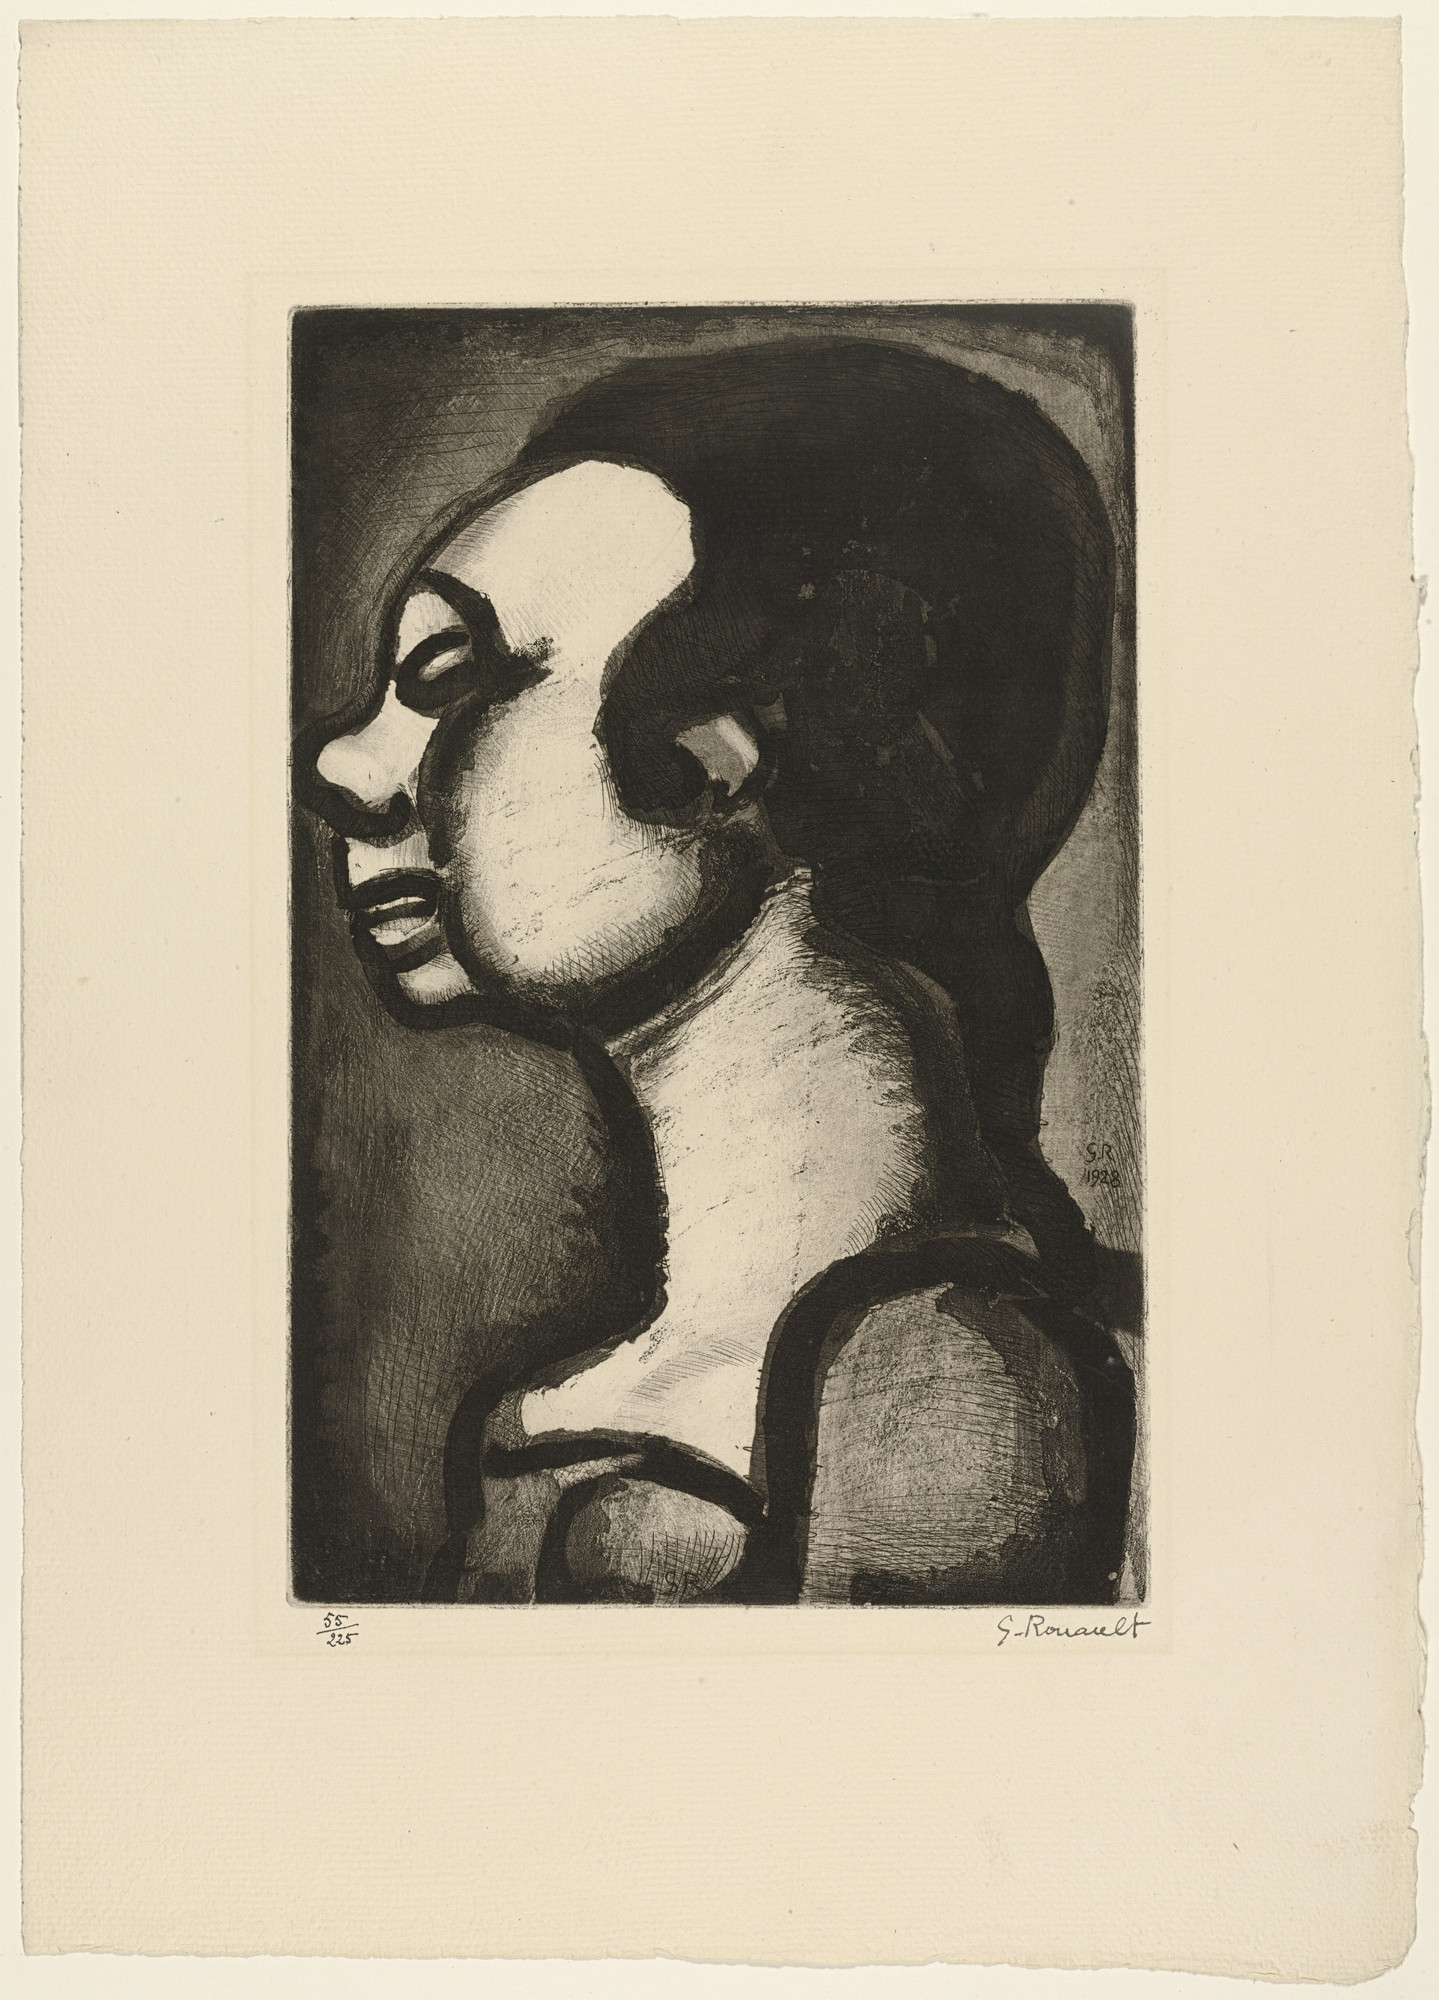 Georges Rouault. Bust of a Girl from Réincarnations du Père Ubu. (1932)